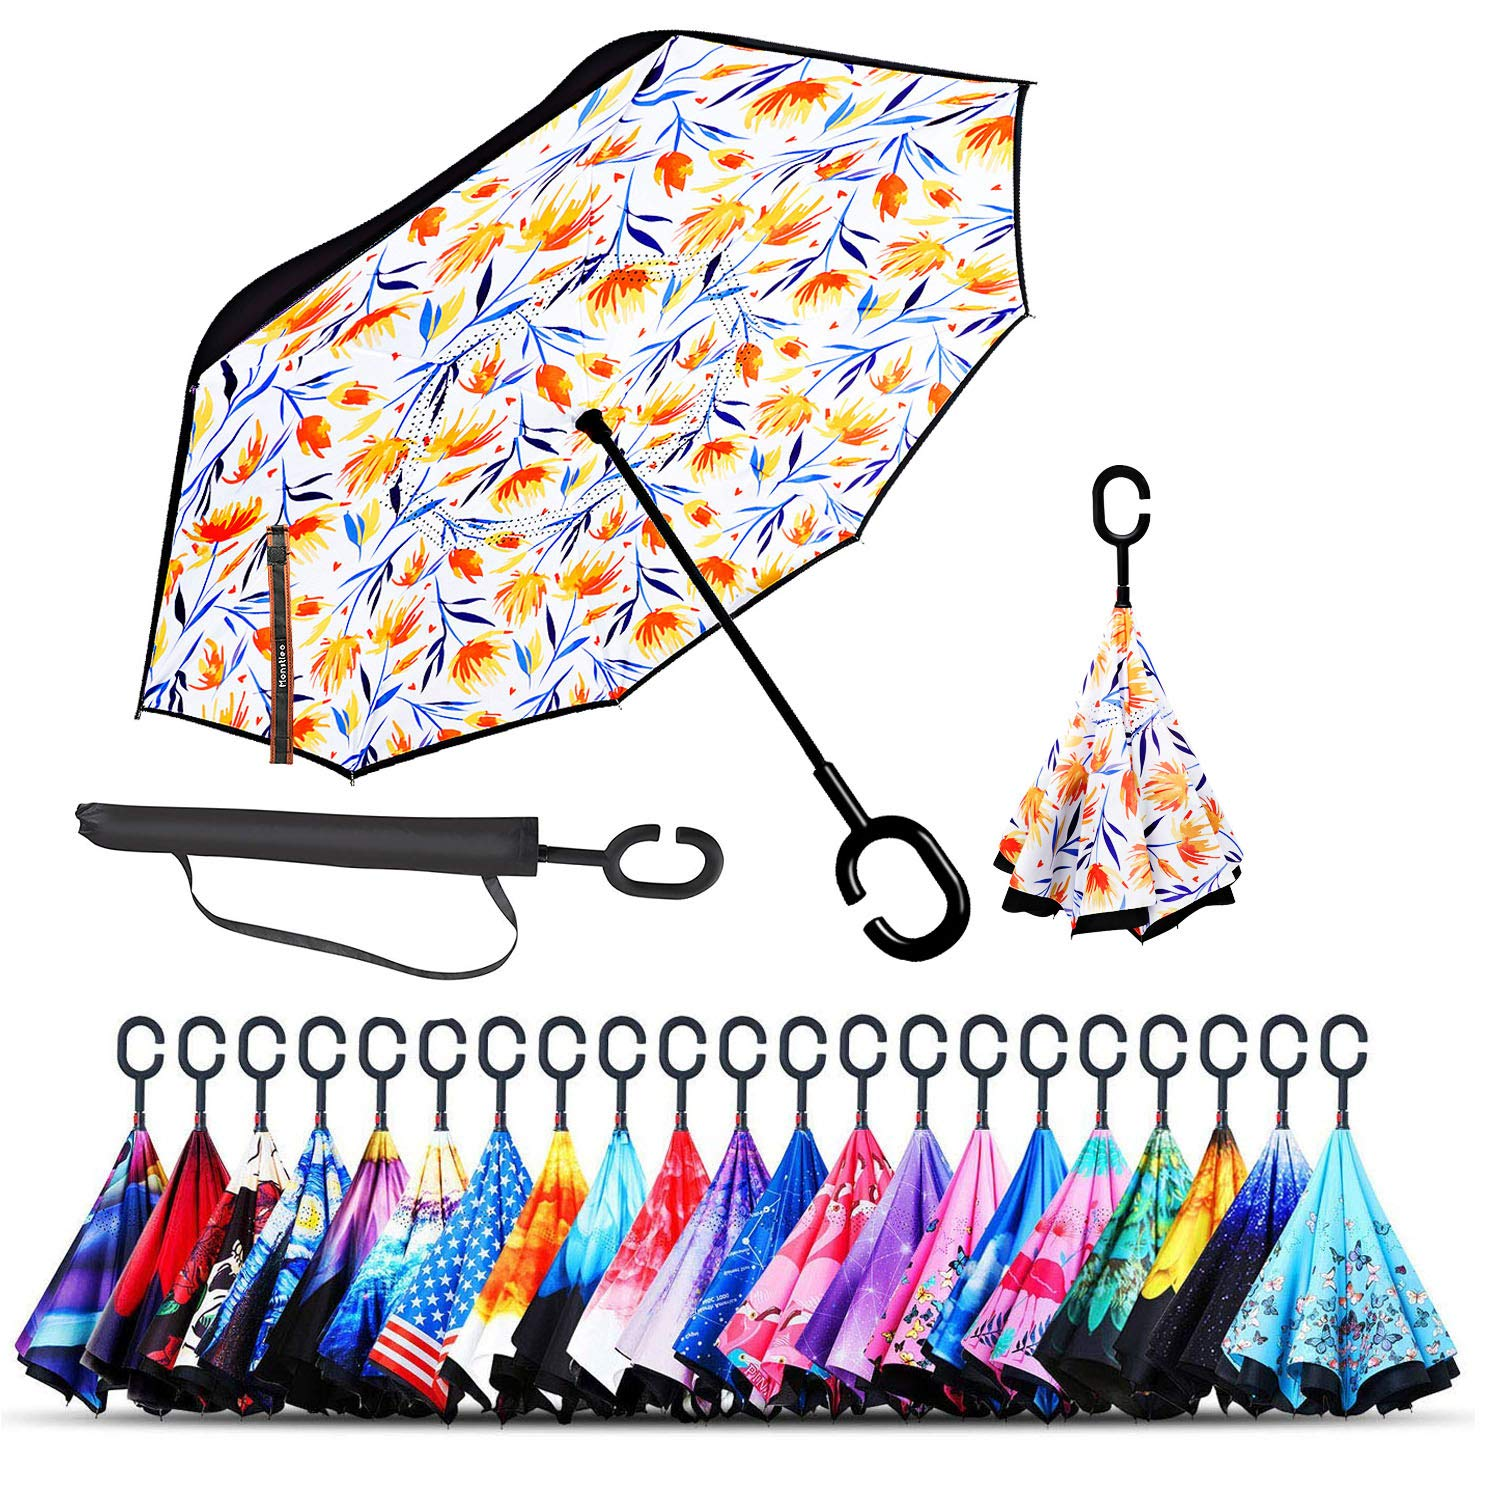 Monstleo Inverted Umbrella,Double Layer Reverse Umbrella for Car and Outdoor Use by, Windproof UV Protection Big Straight Umbrella with C-Shaped Handle and Carrying Bag (Blue Daisy)